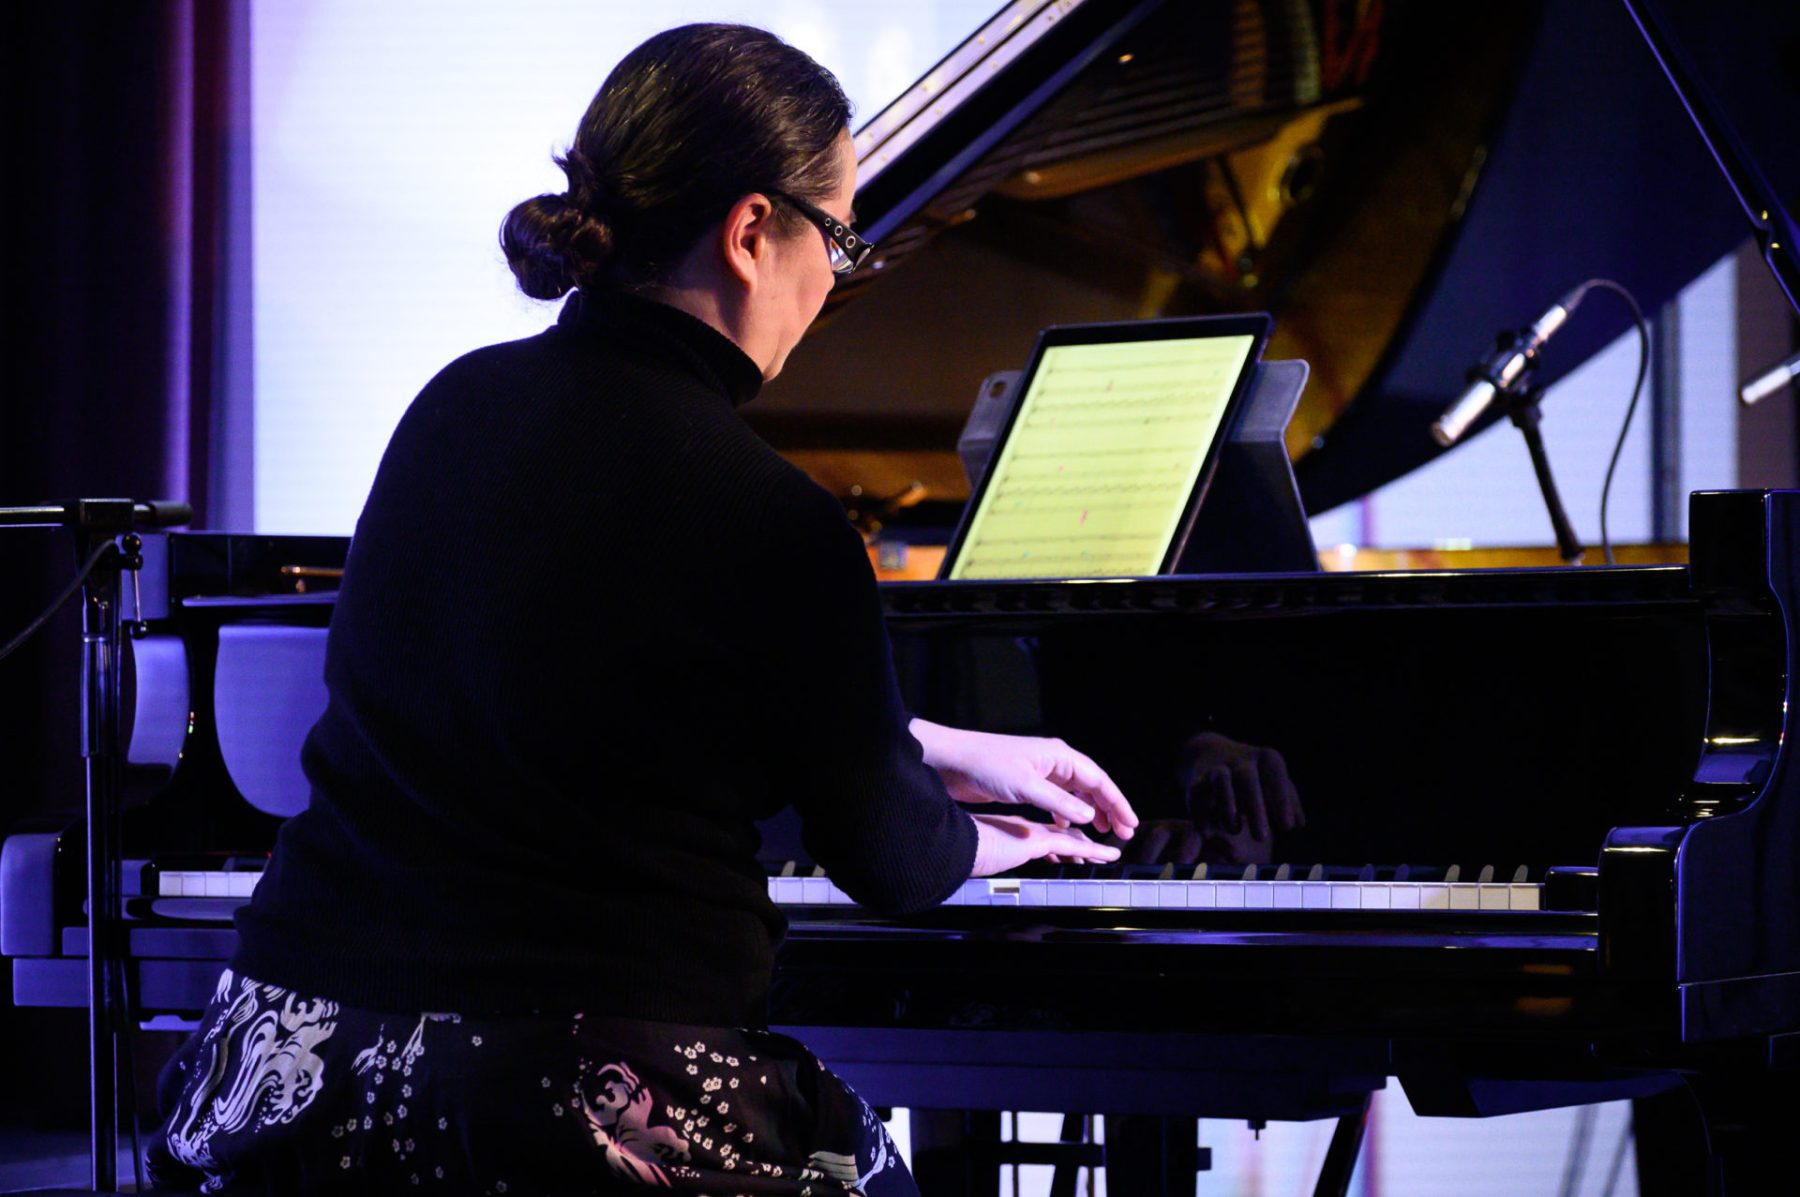 Rachel Kiyo Iwaasa, Music for the Winter Solstice 2019